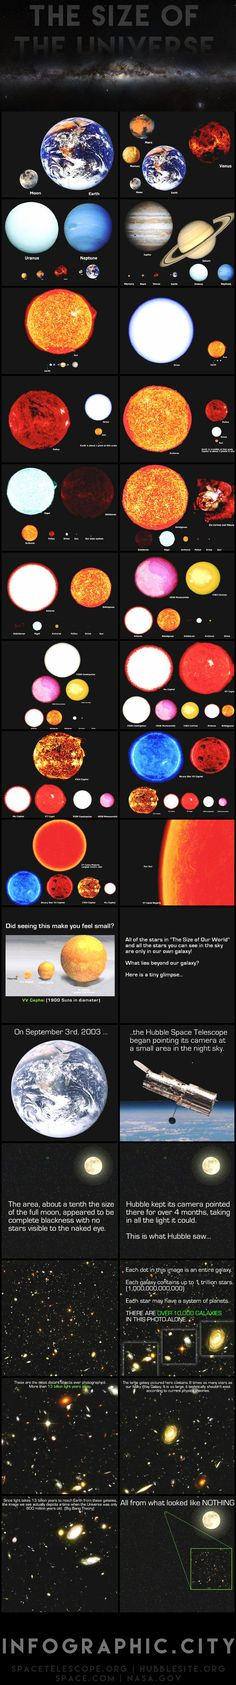 How Big is the Universe? I absolutely love this. We are so unimaginably small and insignificant. It's consoling. It really makes me think that after we die our atoms can be transferred into some other more awesome being in the universe. Interesting.